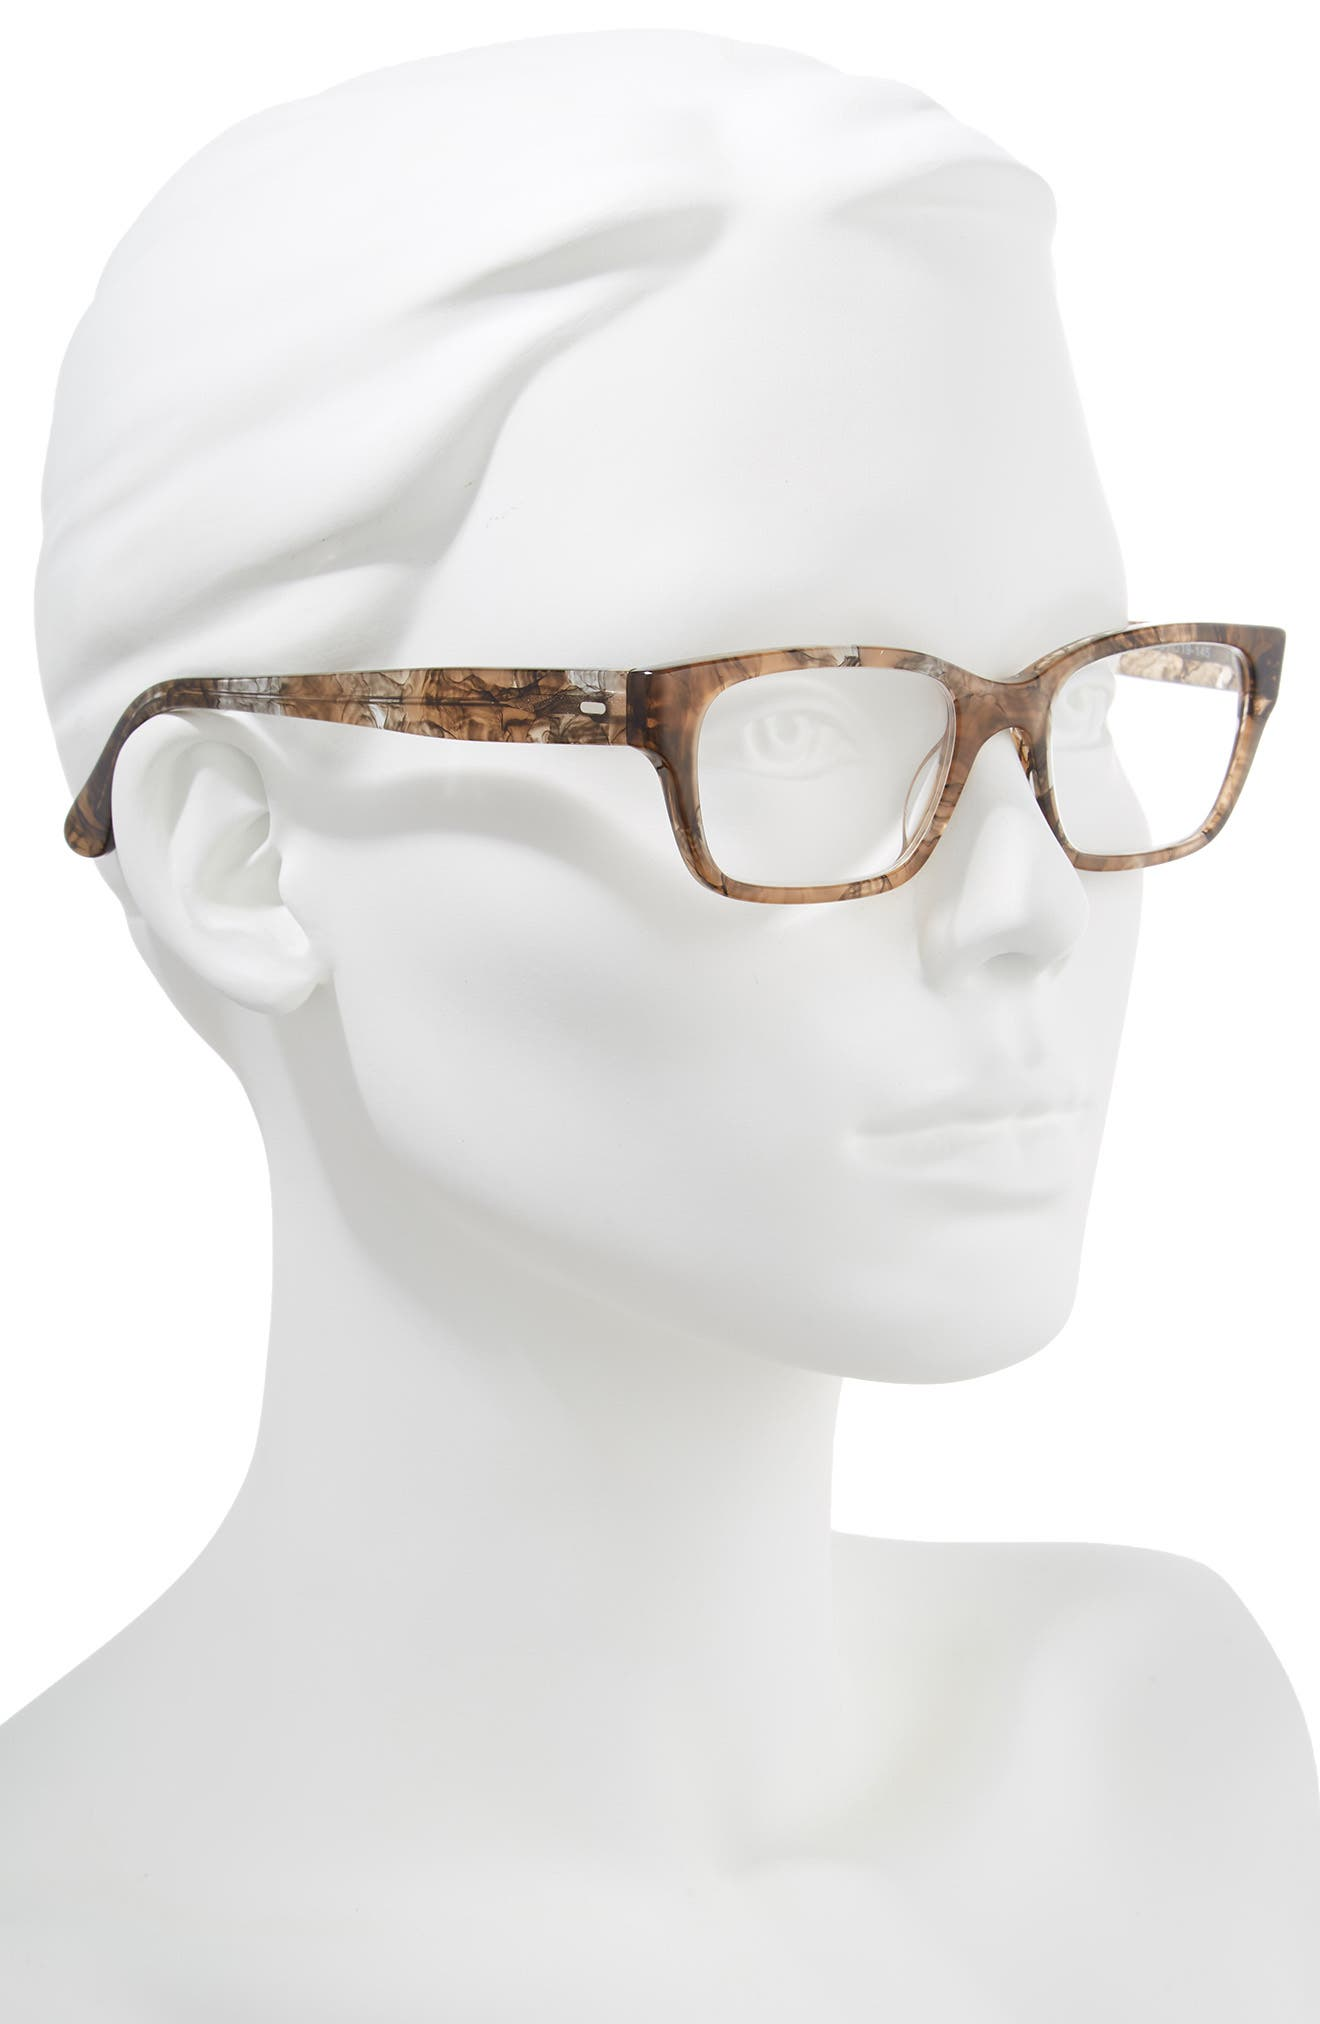 'Sydney' 51mm Reading Glasses,                             Alternate thumbnail 2, color,                             Transparent Marble